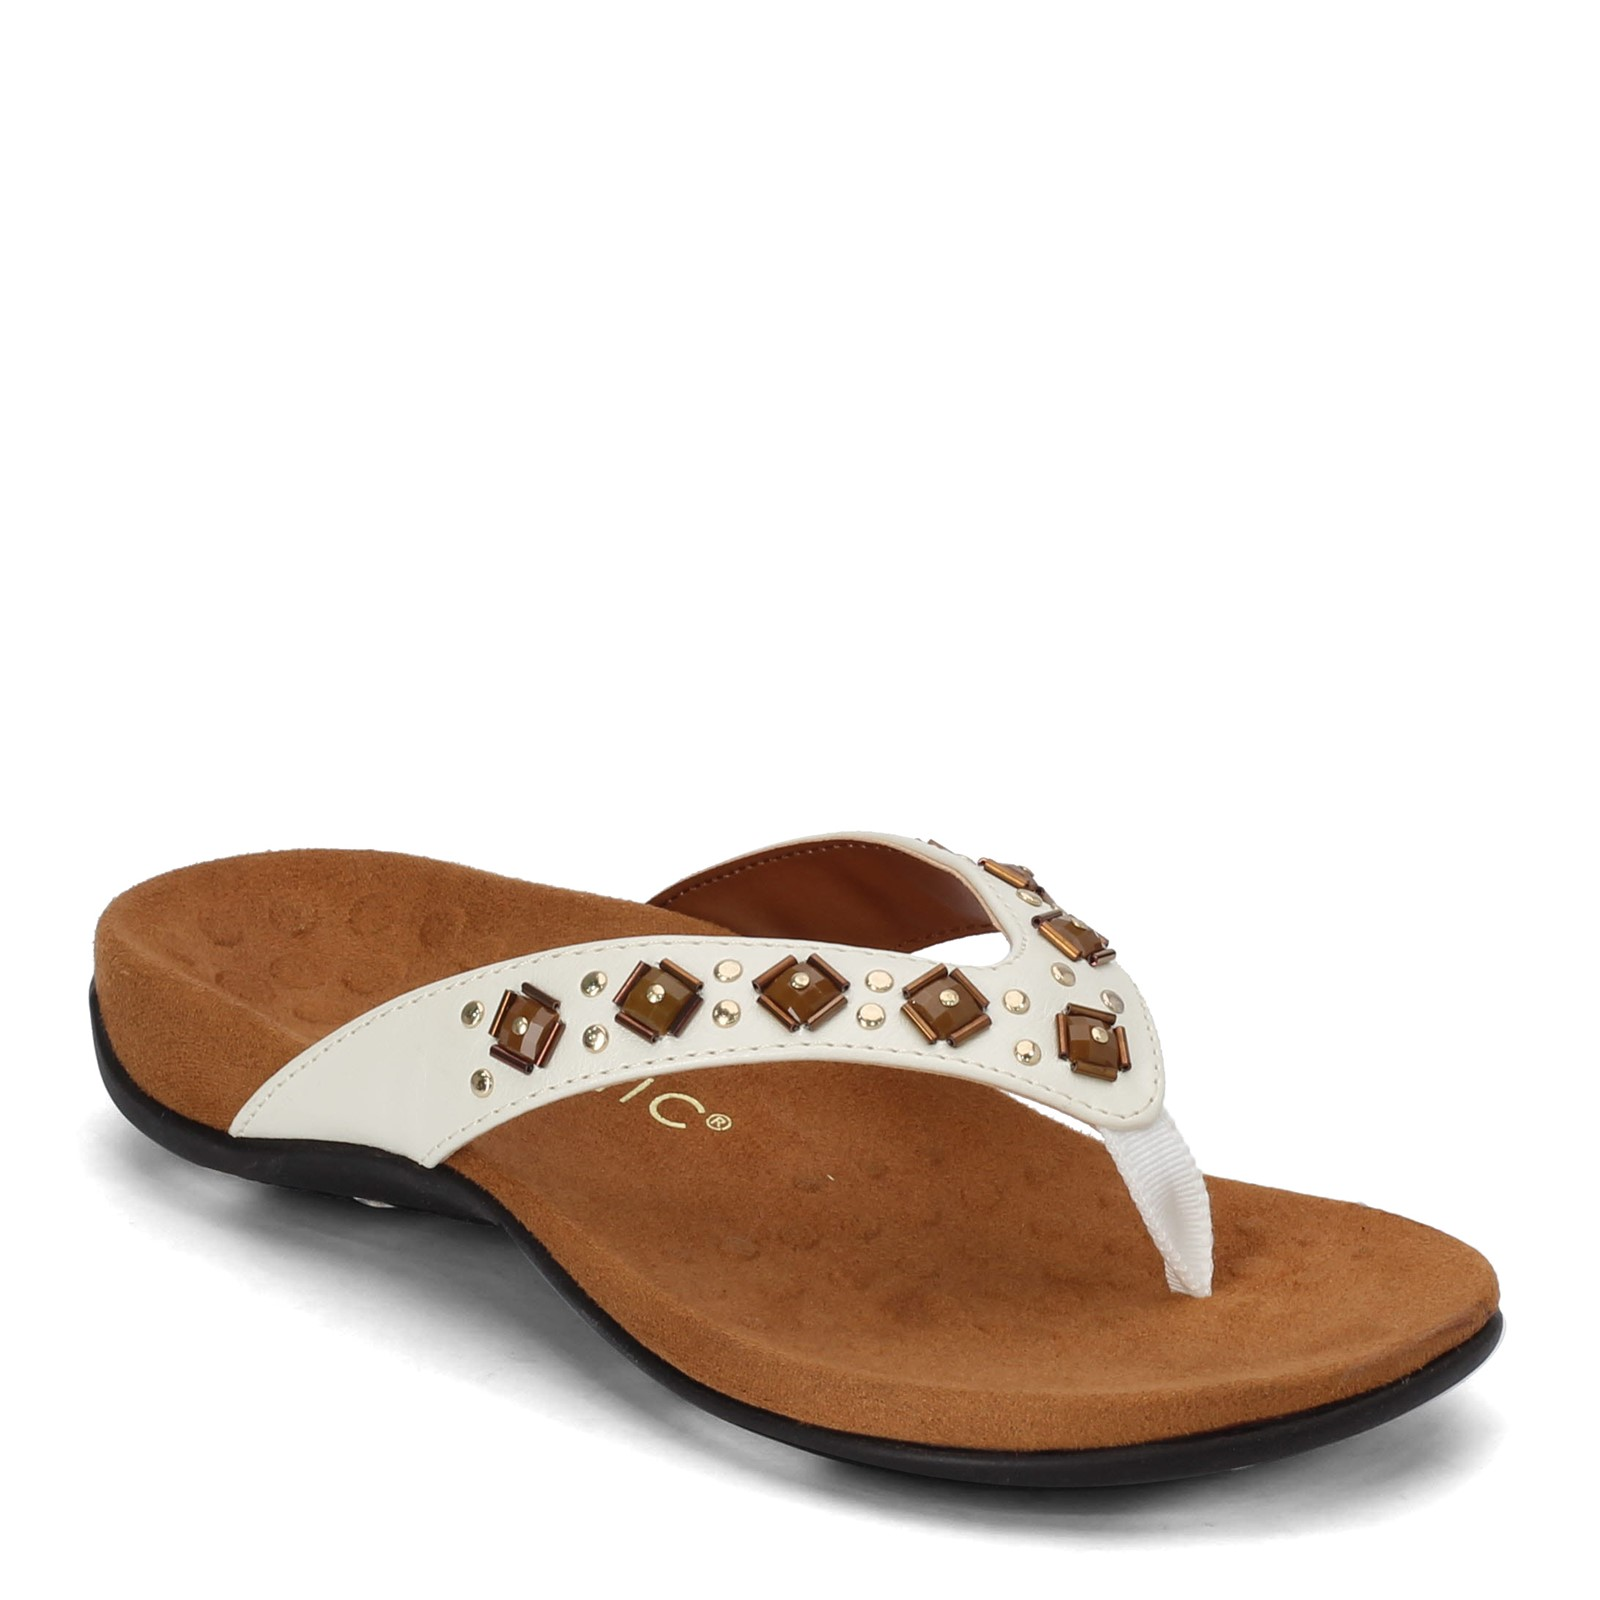 Women's Vionic, Floriana Thong Sandals